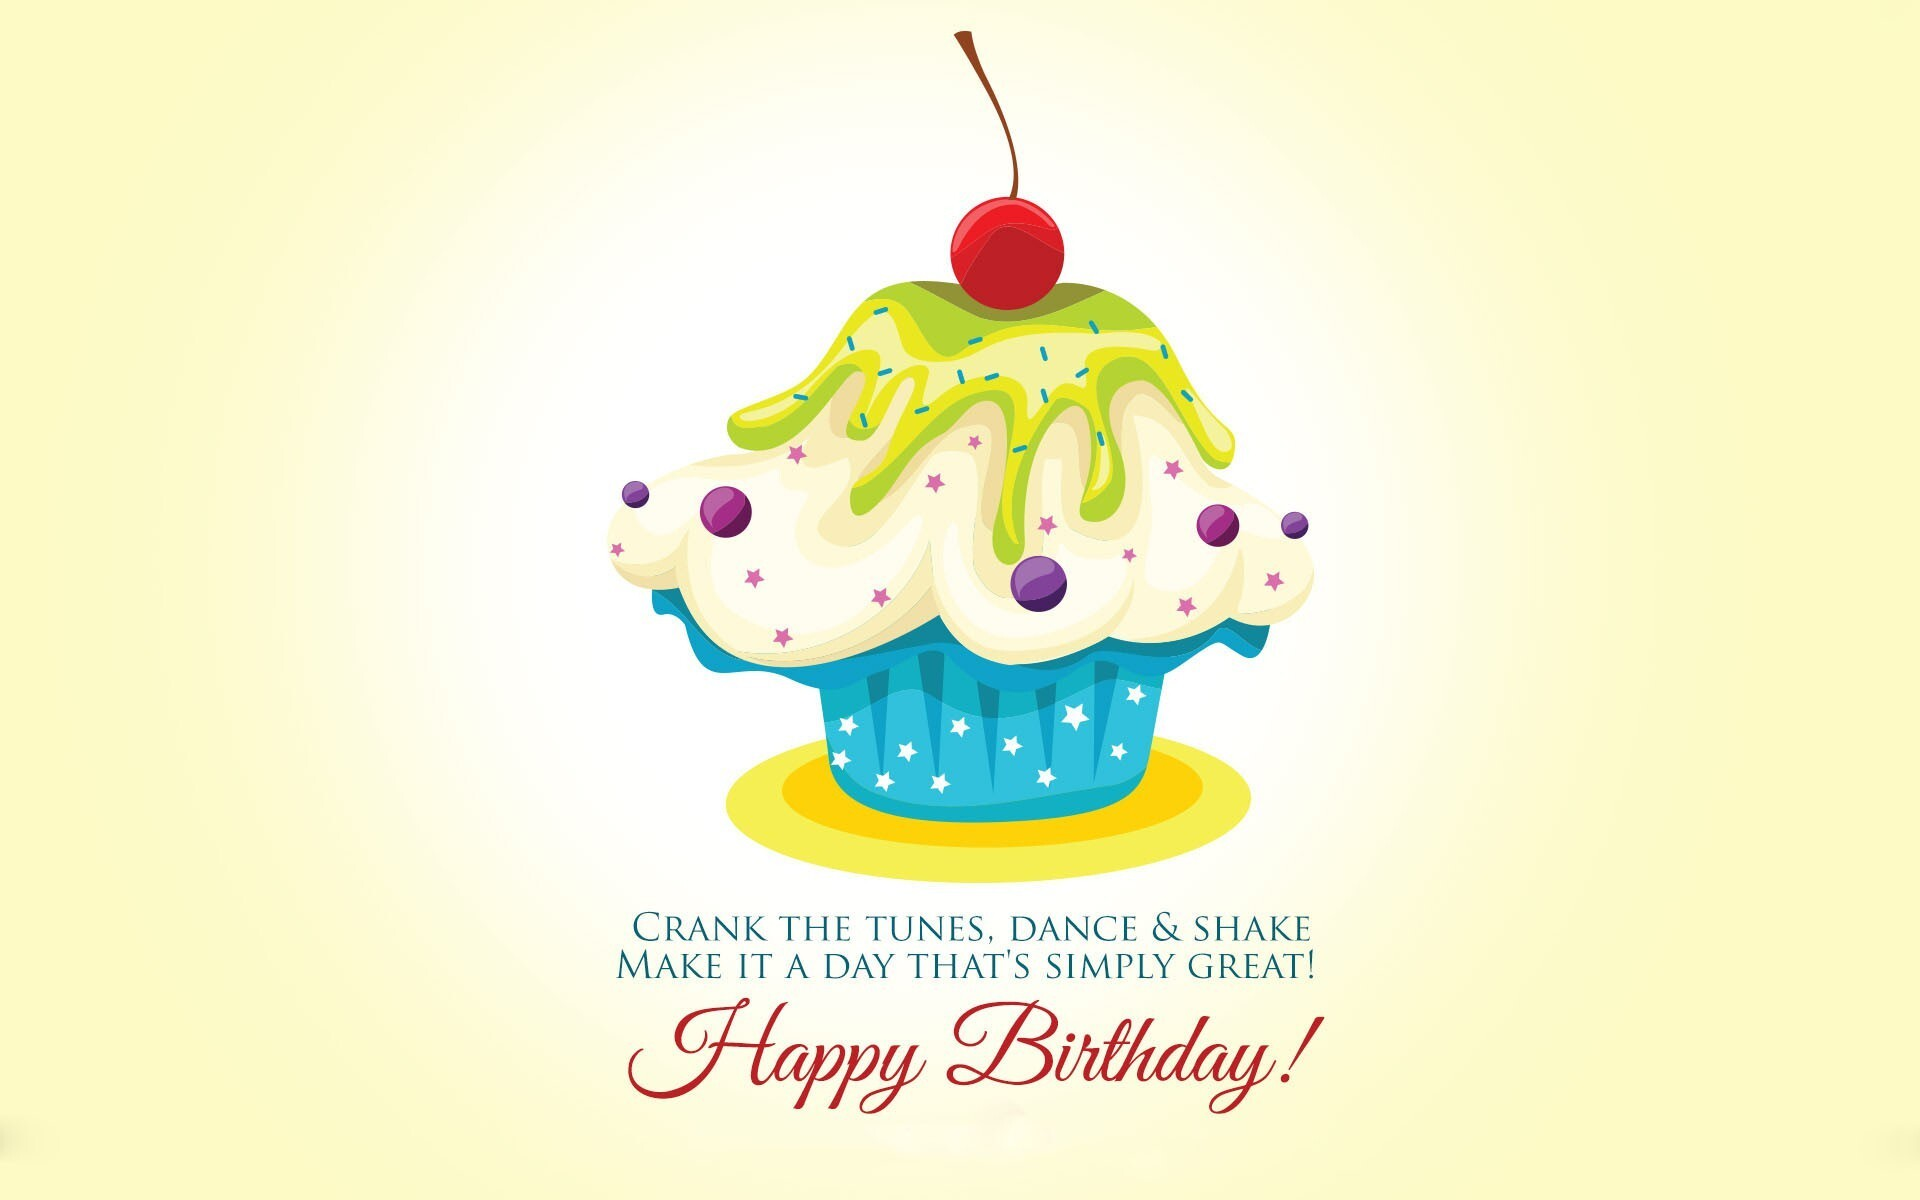 Happy Birthday Wishes Quote HD Wallpaper Background  HD Wallpapers